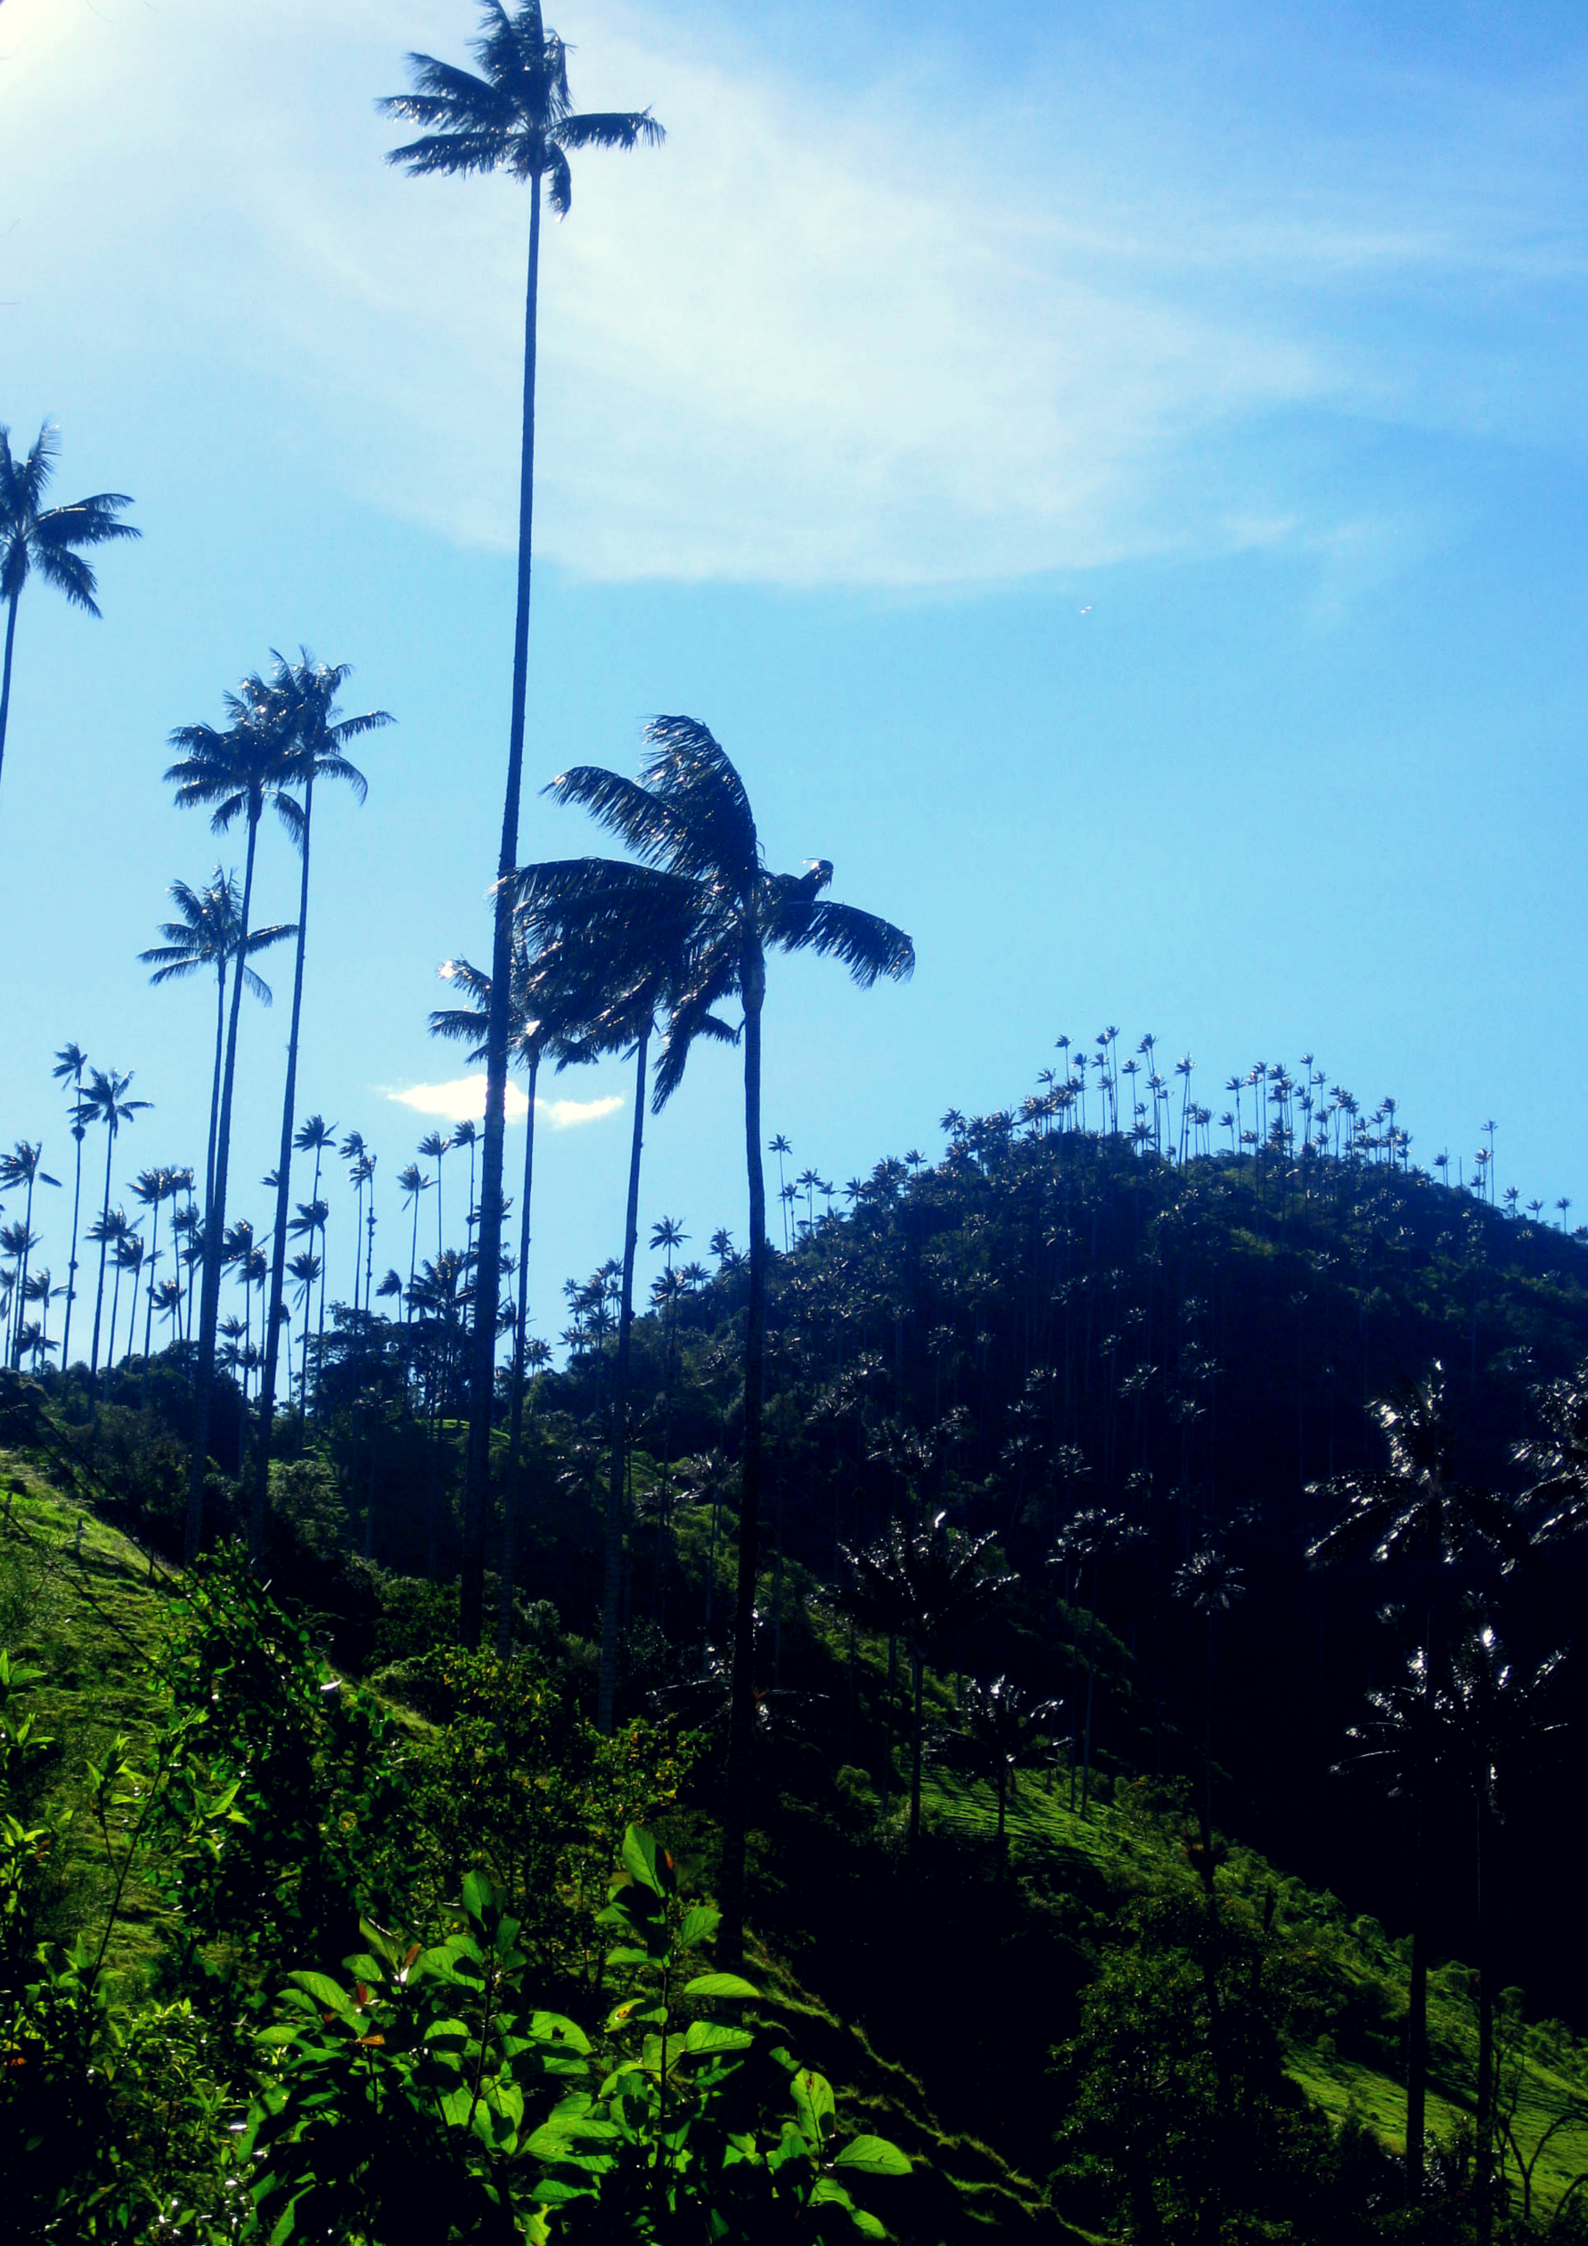 #ExploretheElements Earth Entry, Valle de Cocora, Colombia